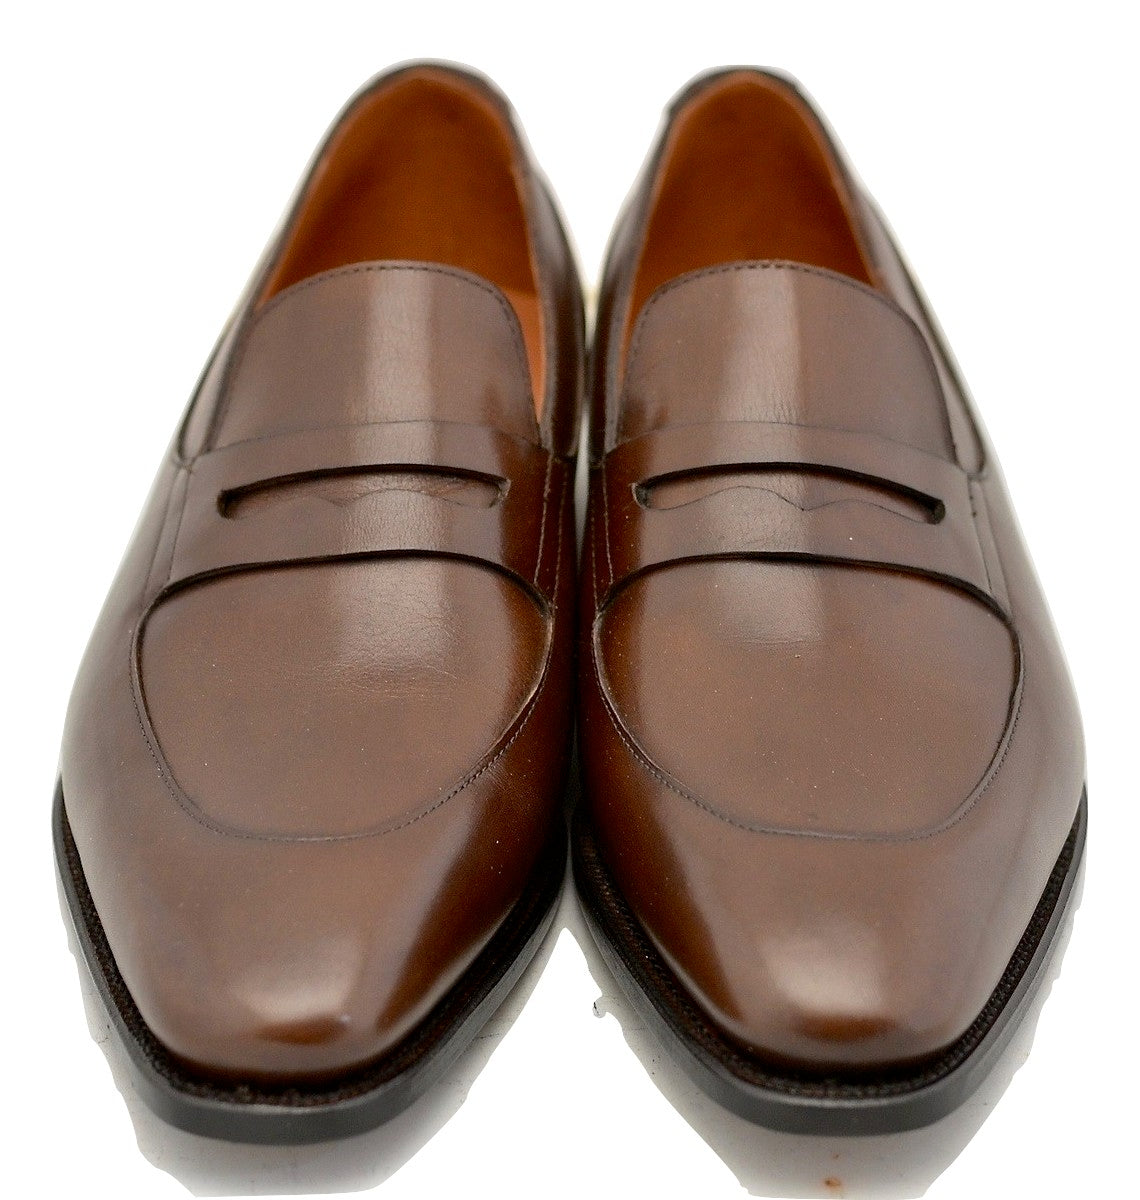 Apron loafer | dark brown box